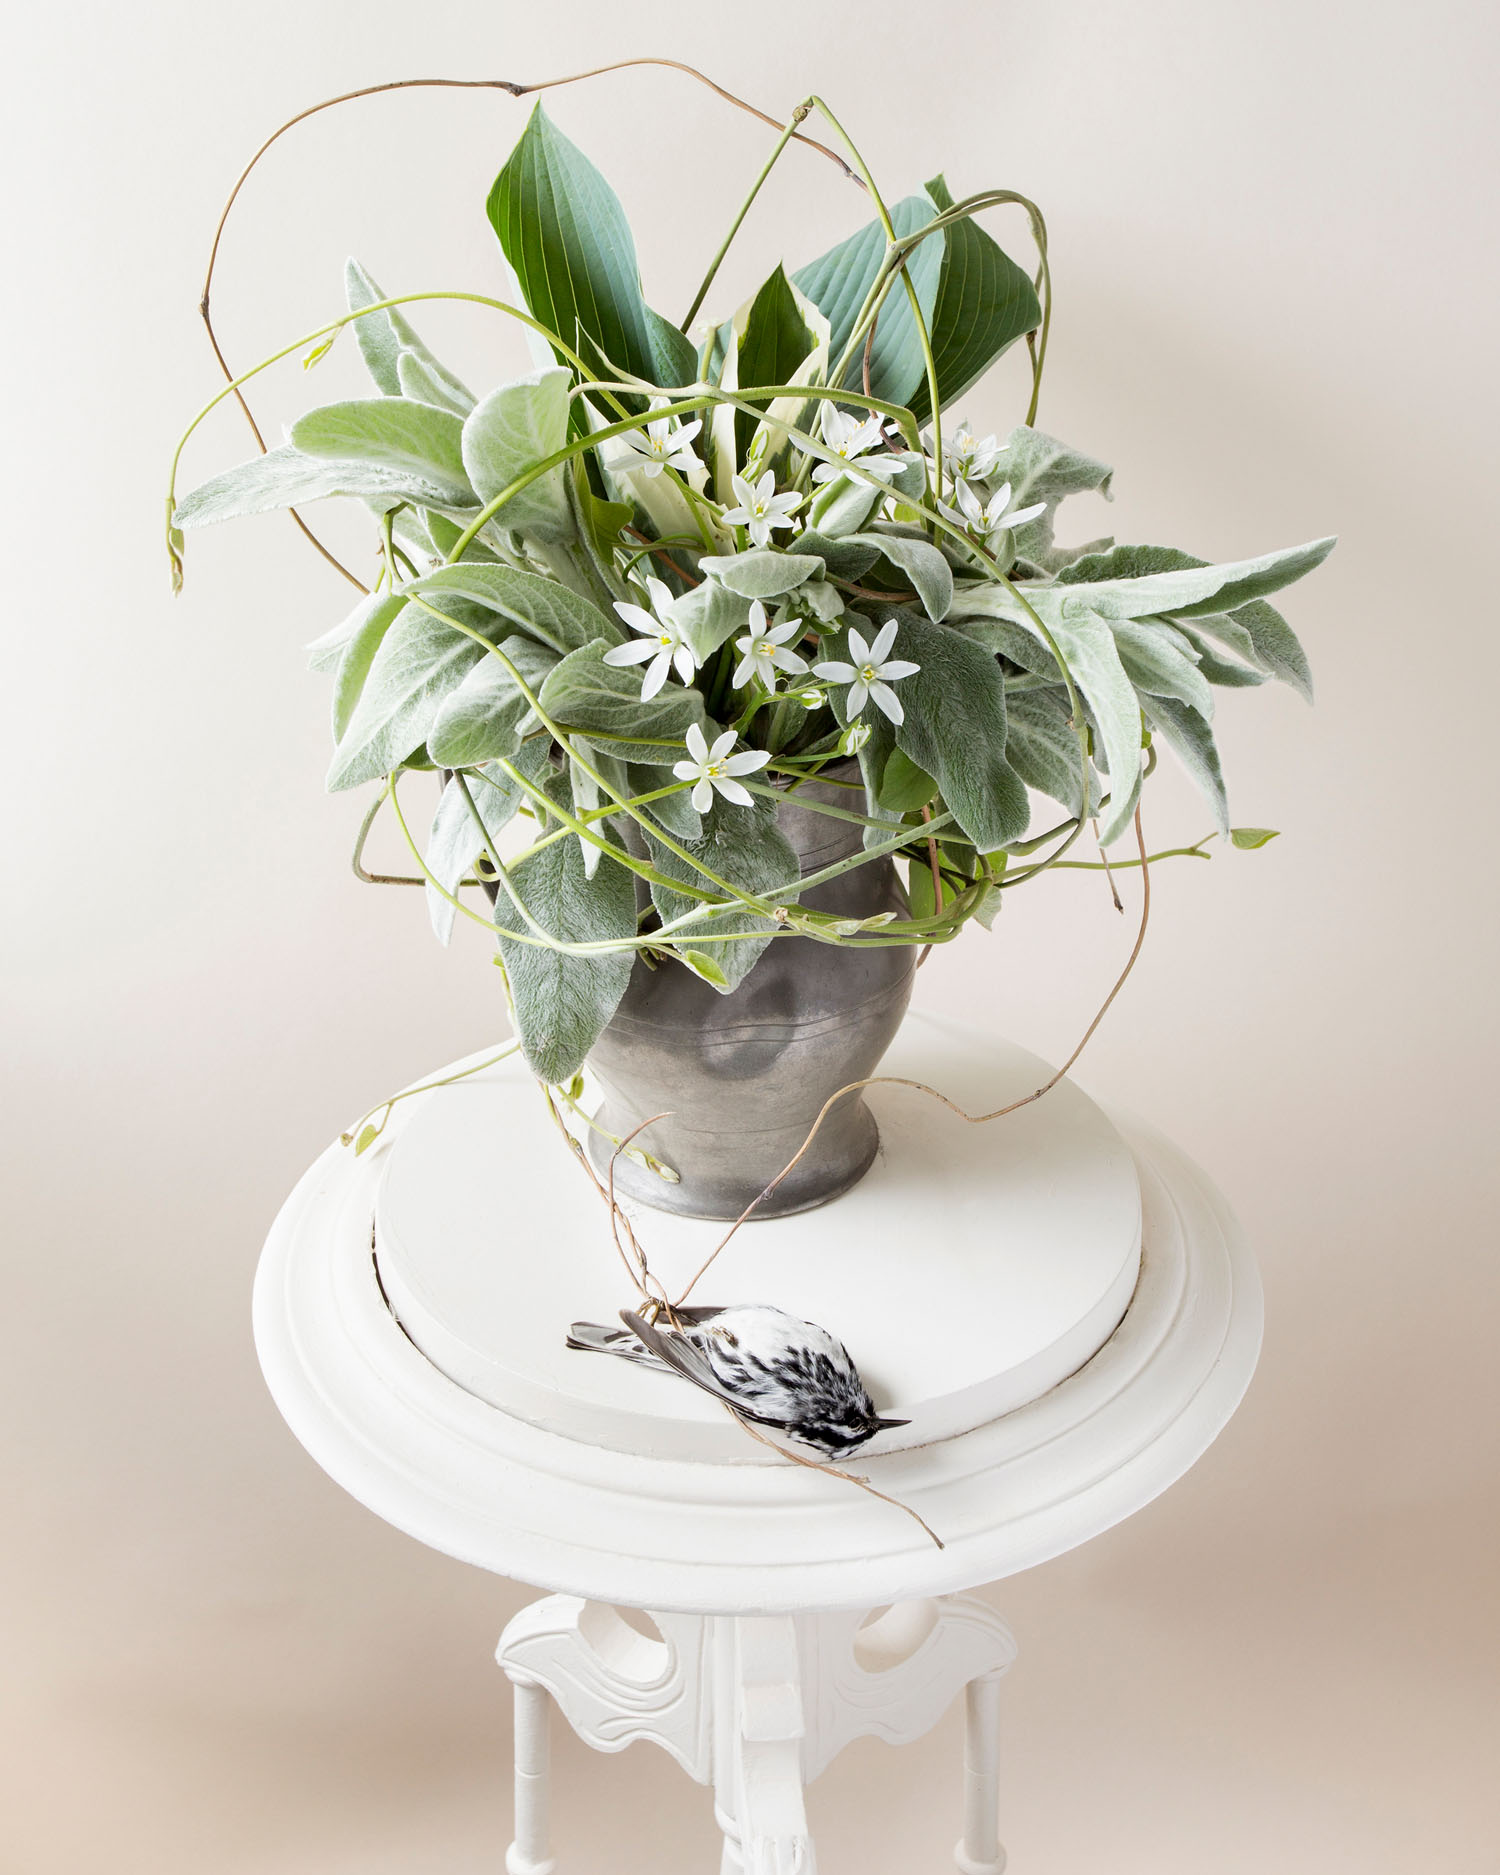 A still life photograph by Kimberly Witham.